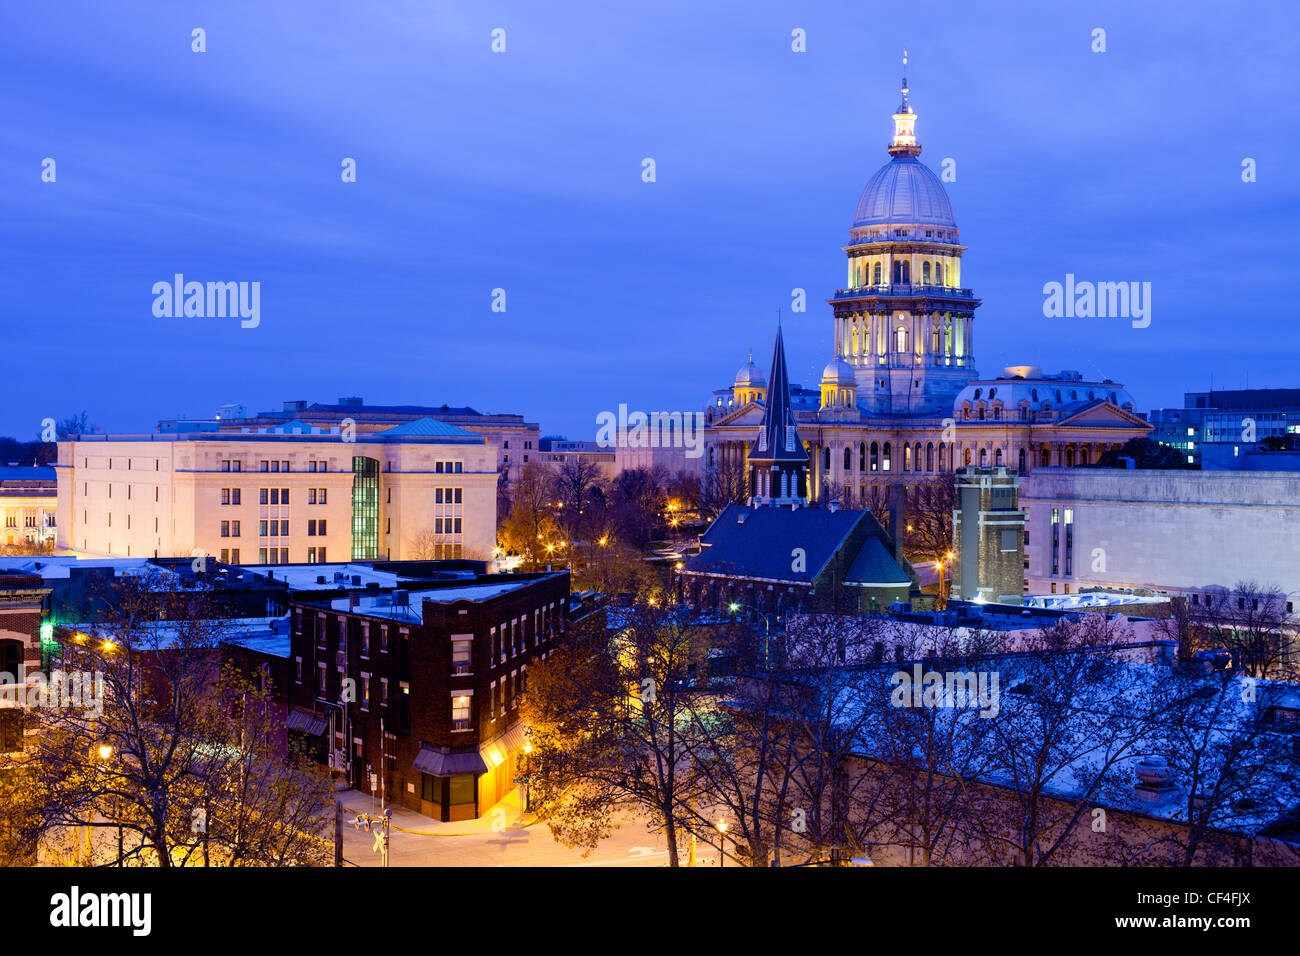 The Illinois State capital building looms over downtown Springfield, IL on a cold winter evening. - Stock Image